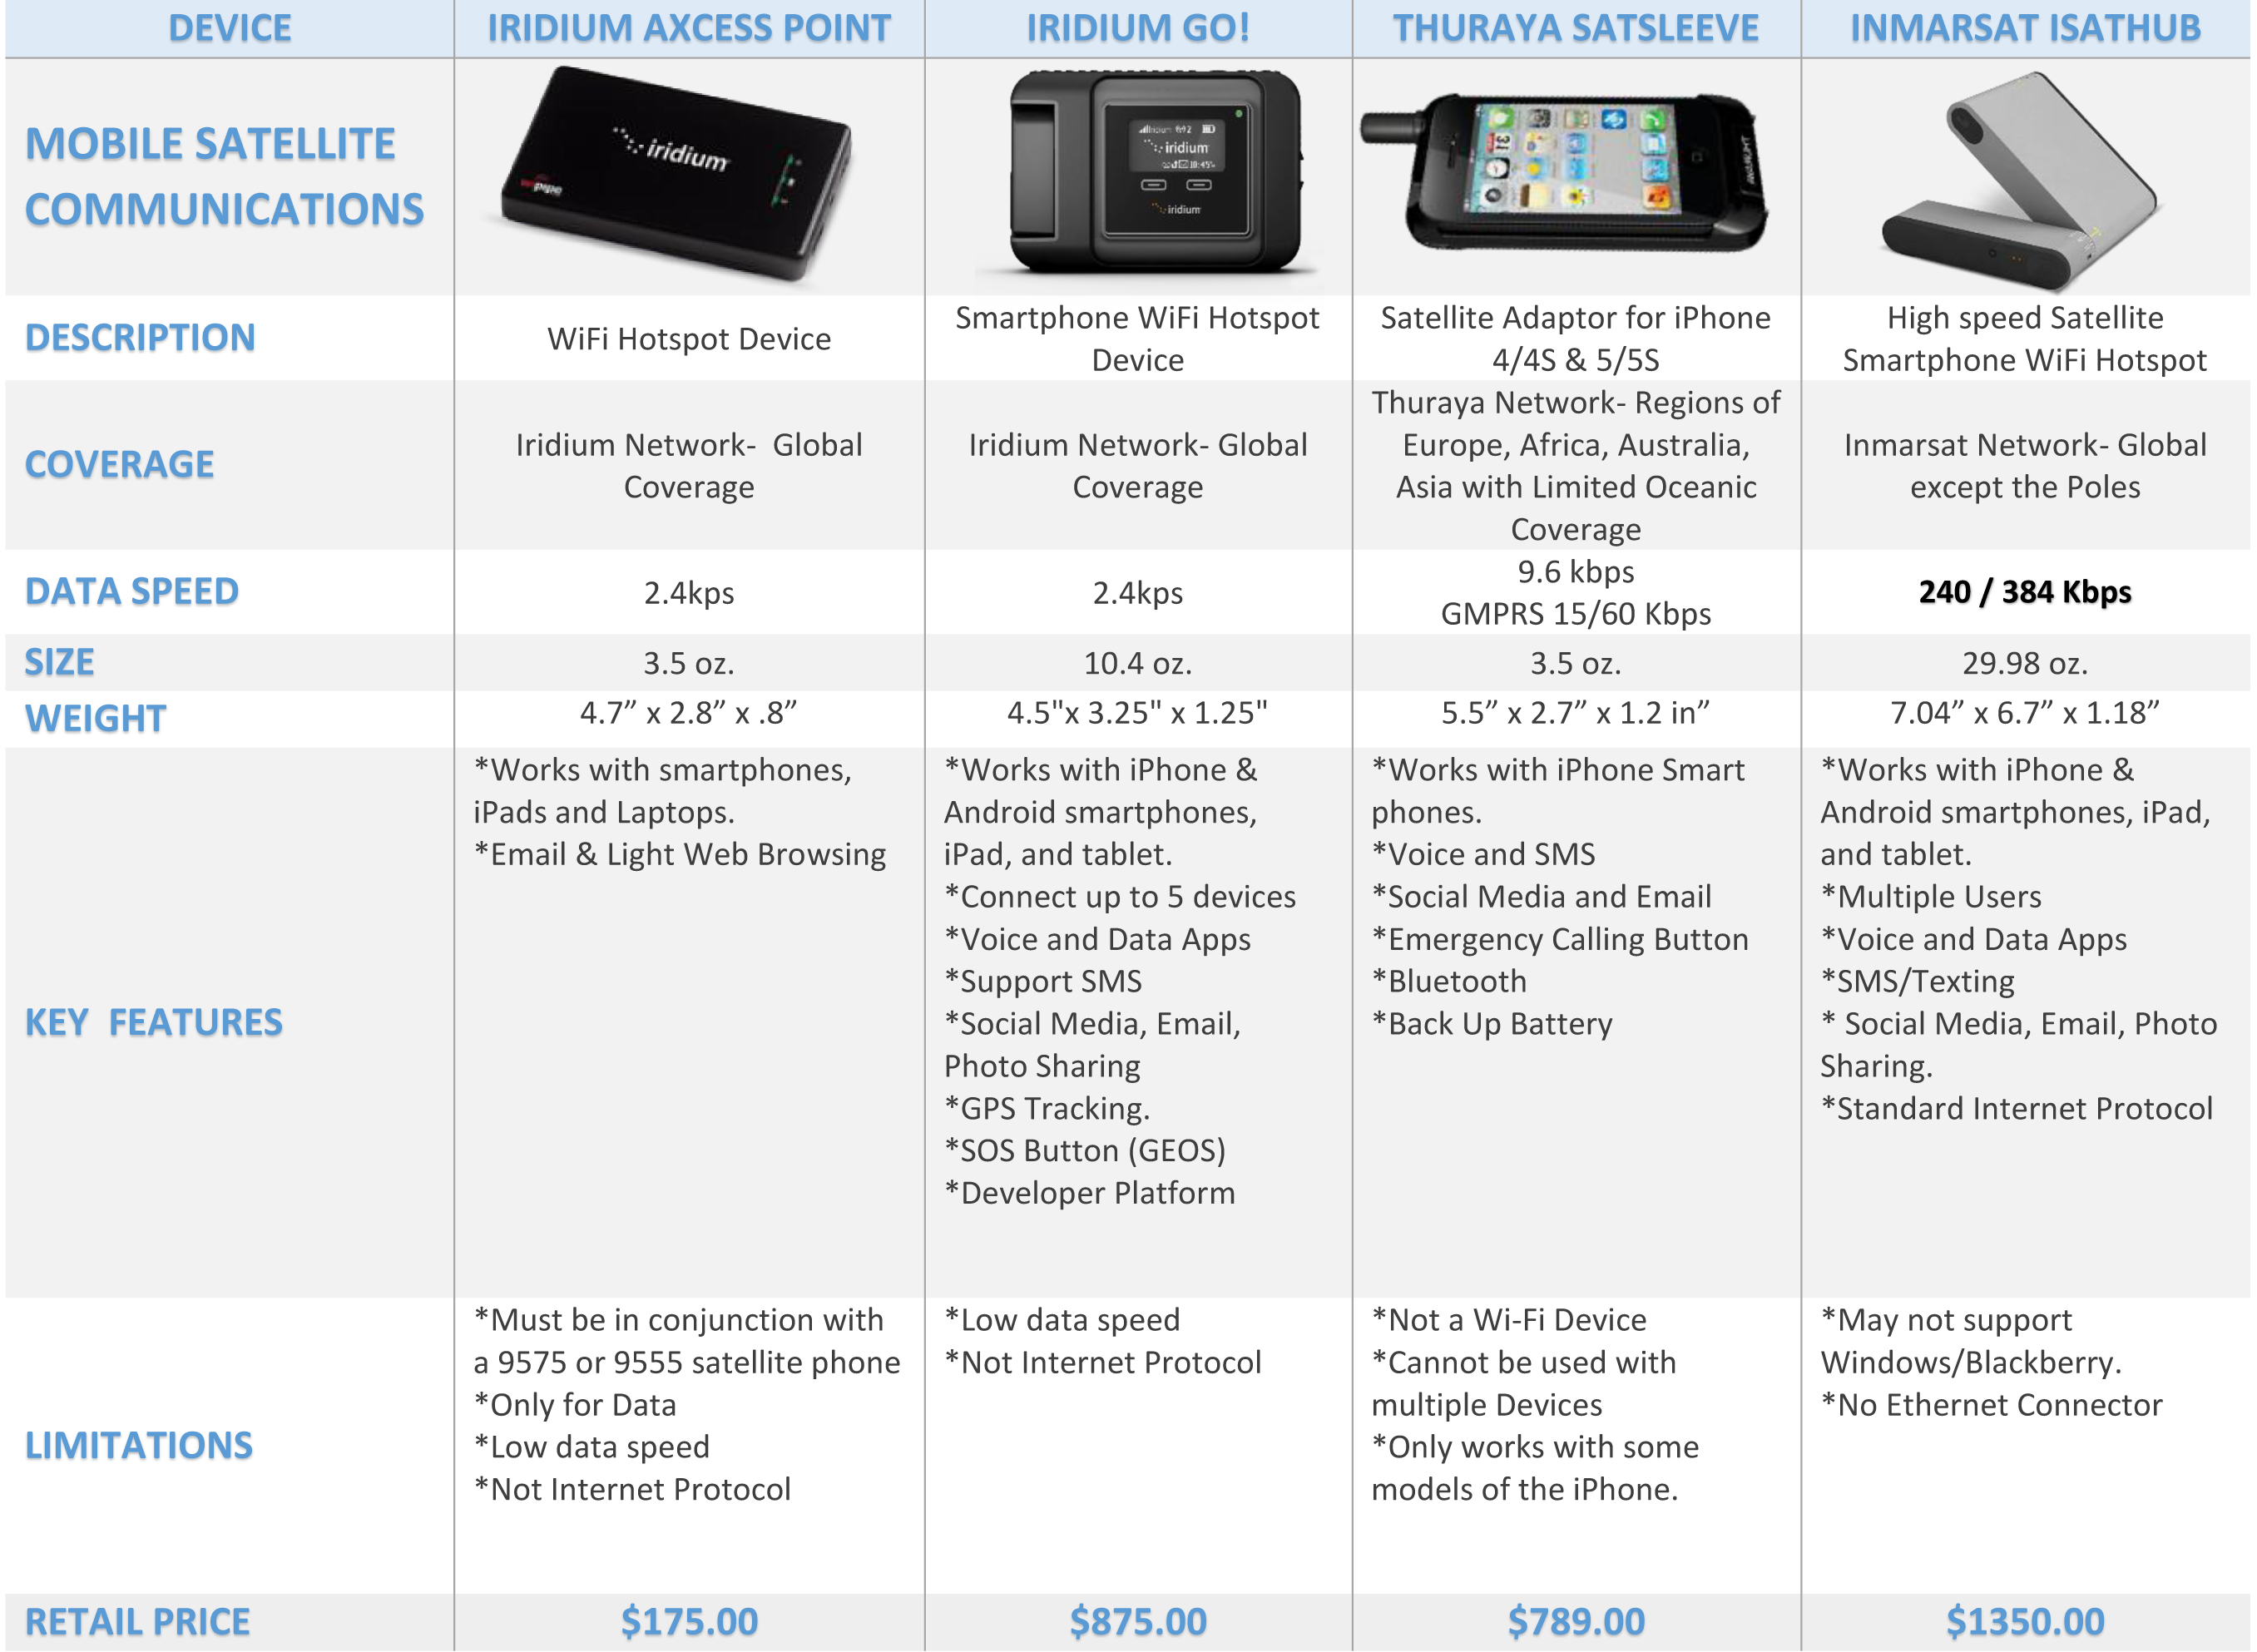 iridium-go-isathub-isavi-thuraya-satsleeve-axcess-point-comparison-chart.png